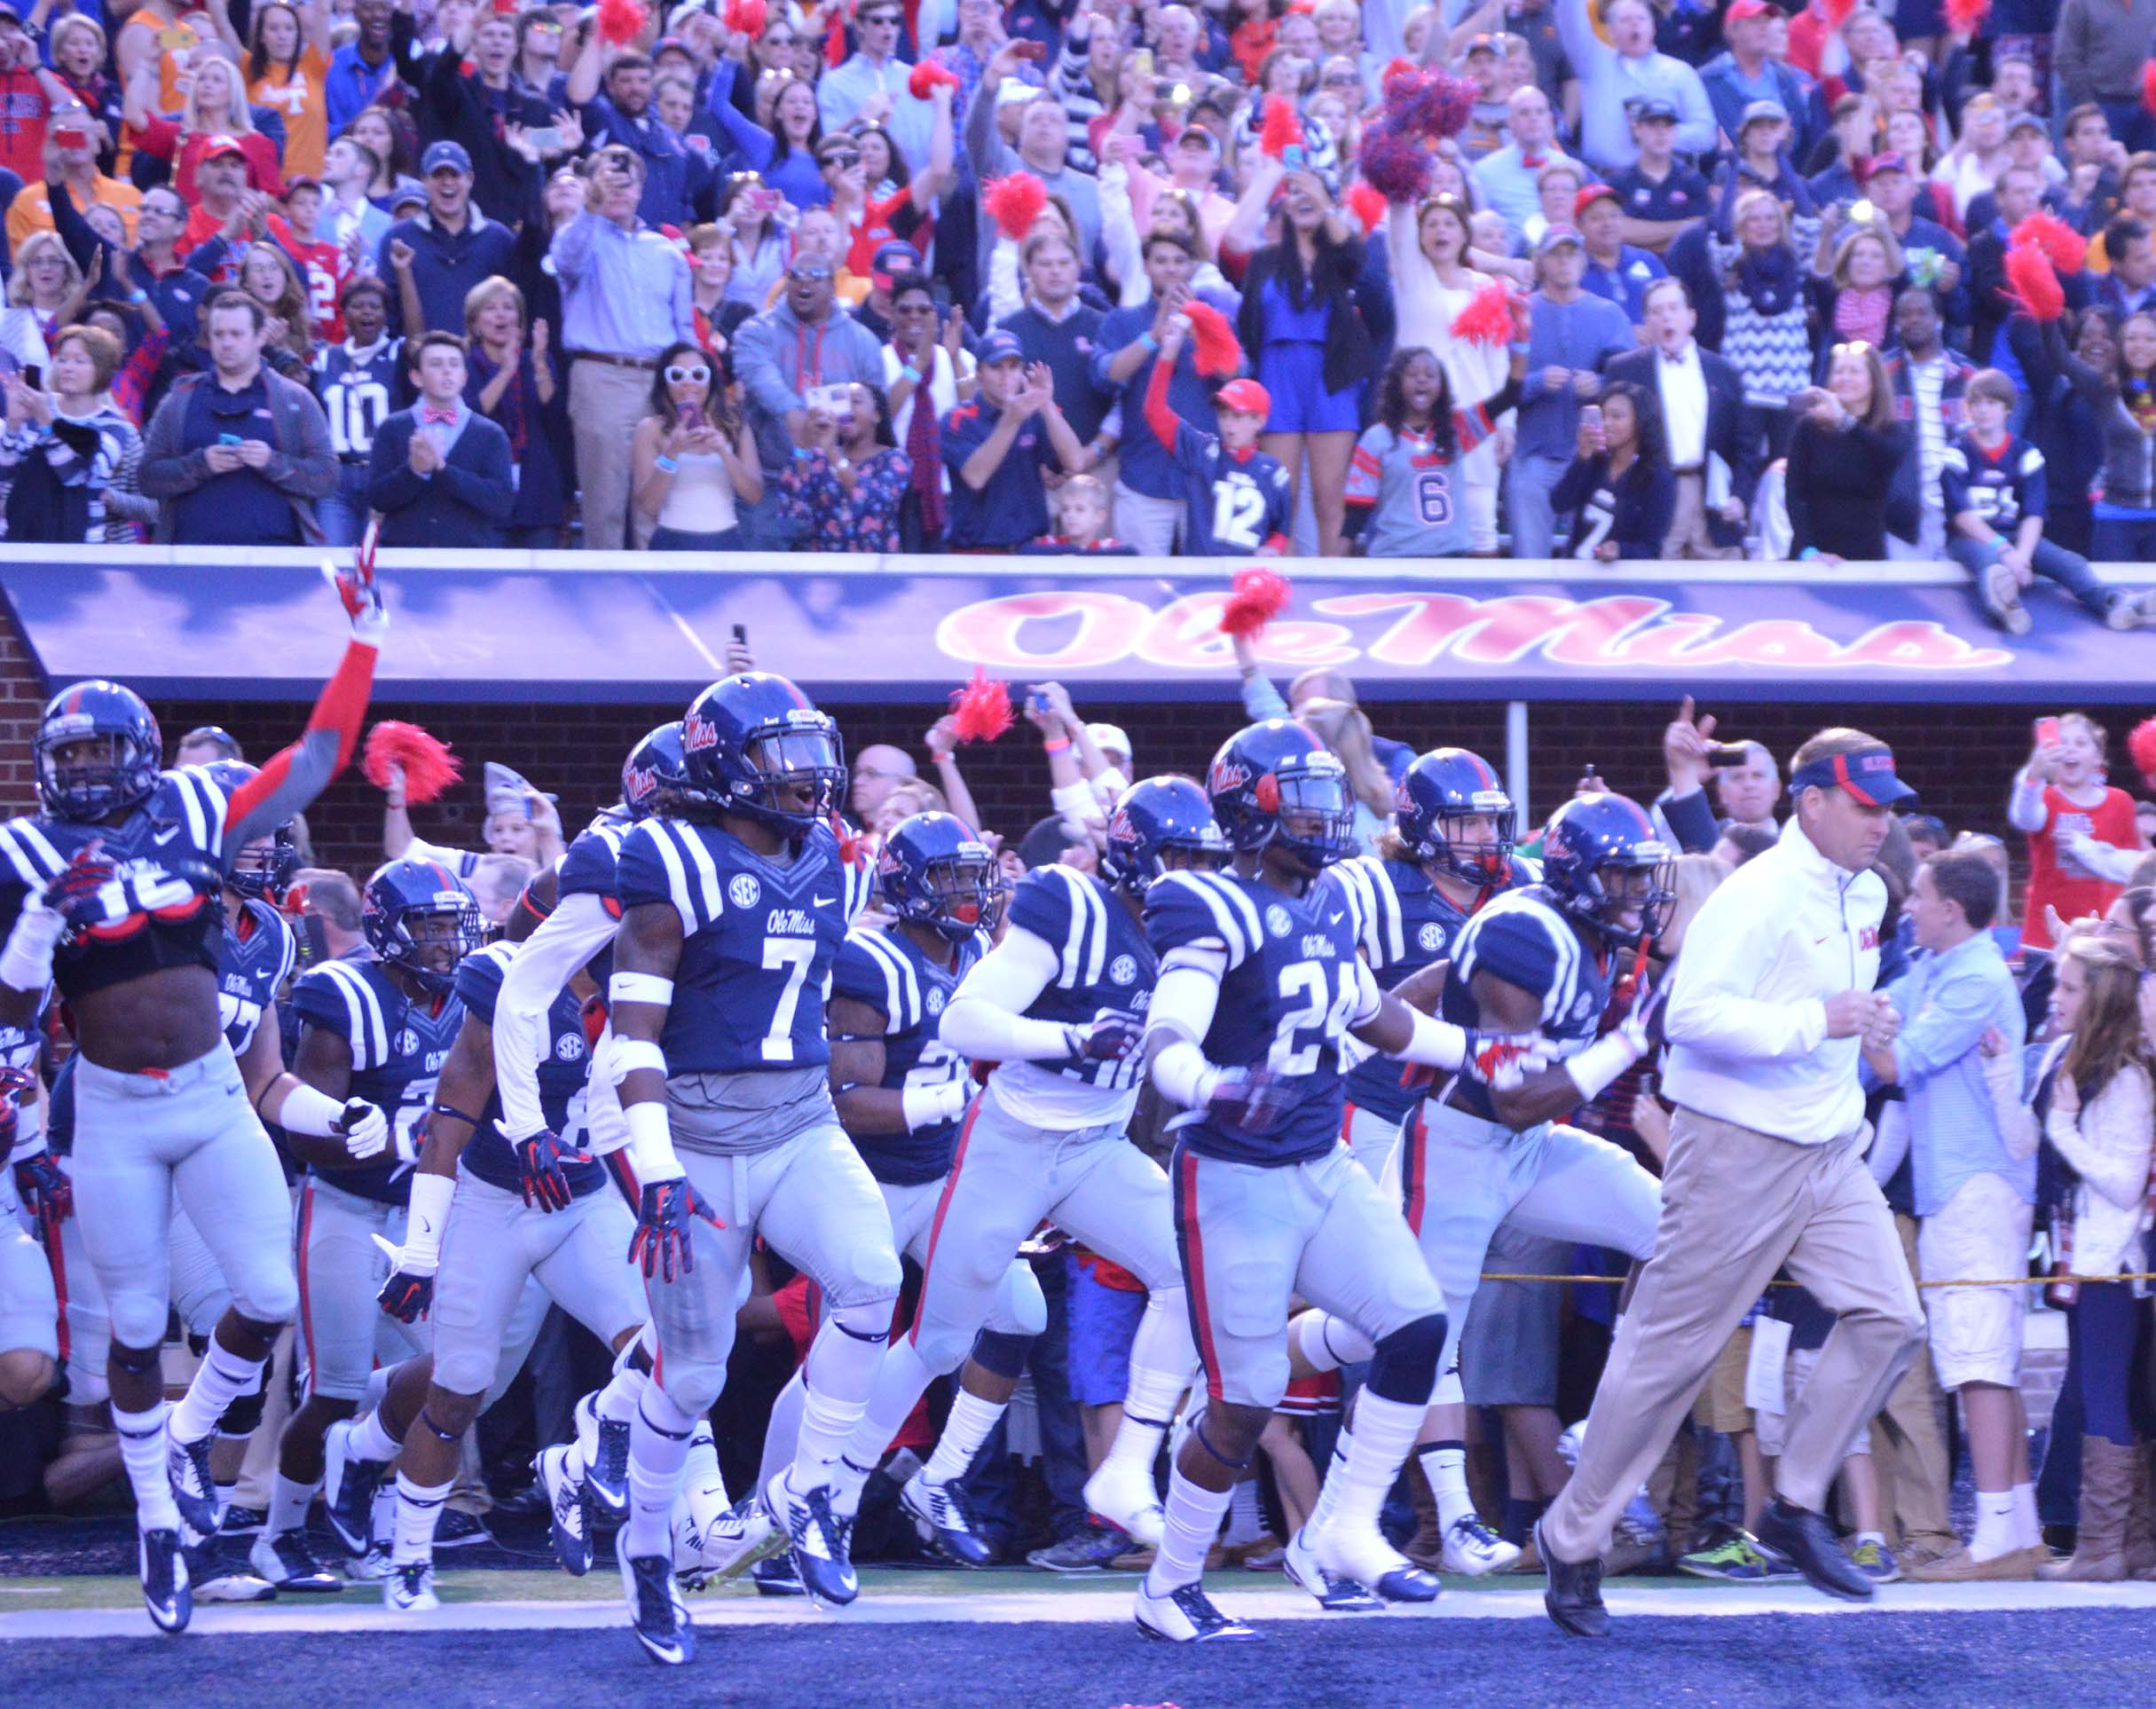 Coach Hugh Freeze leads the Rebels out of the tunnel before the Tennessee game. / Photo by Callie Daniels